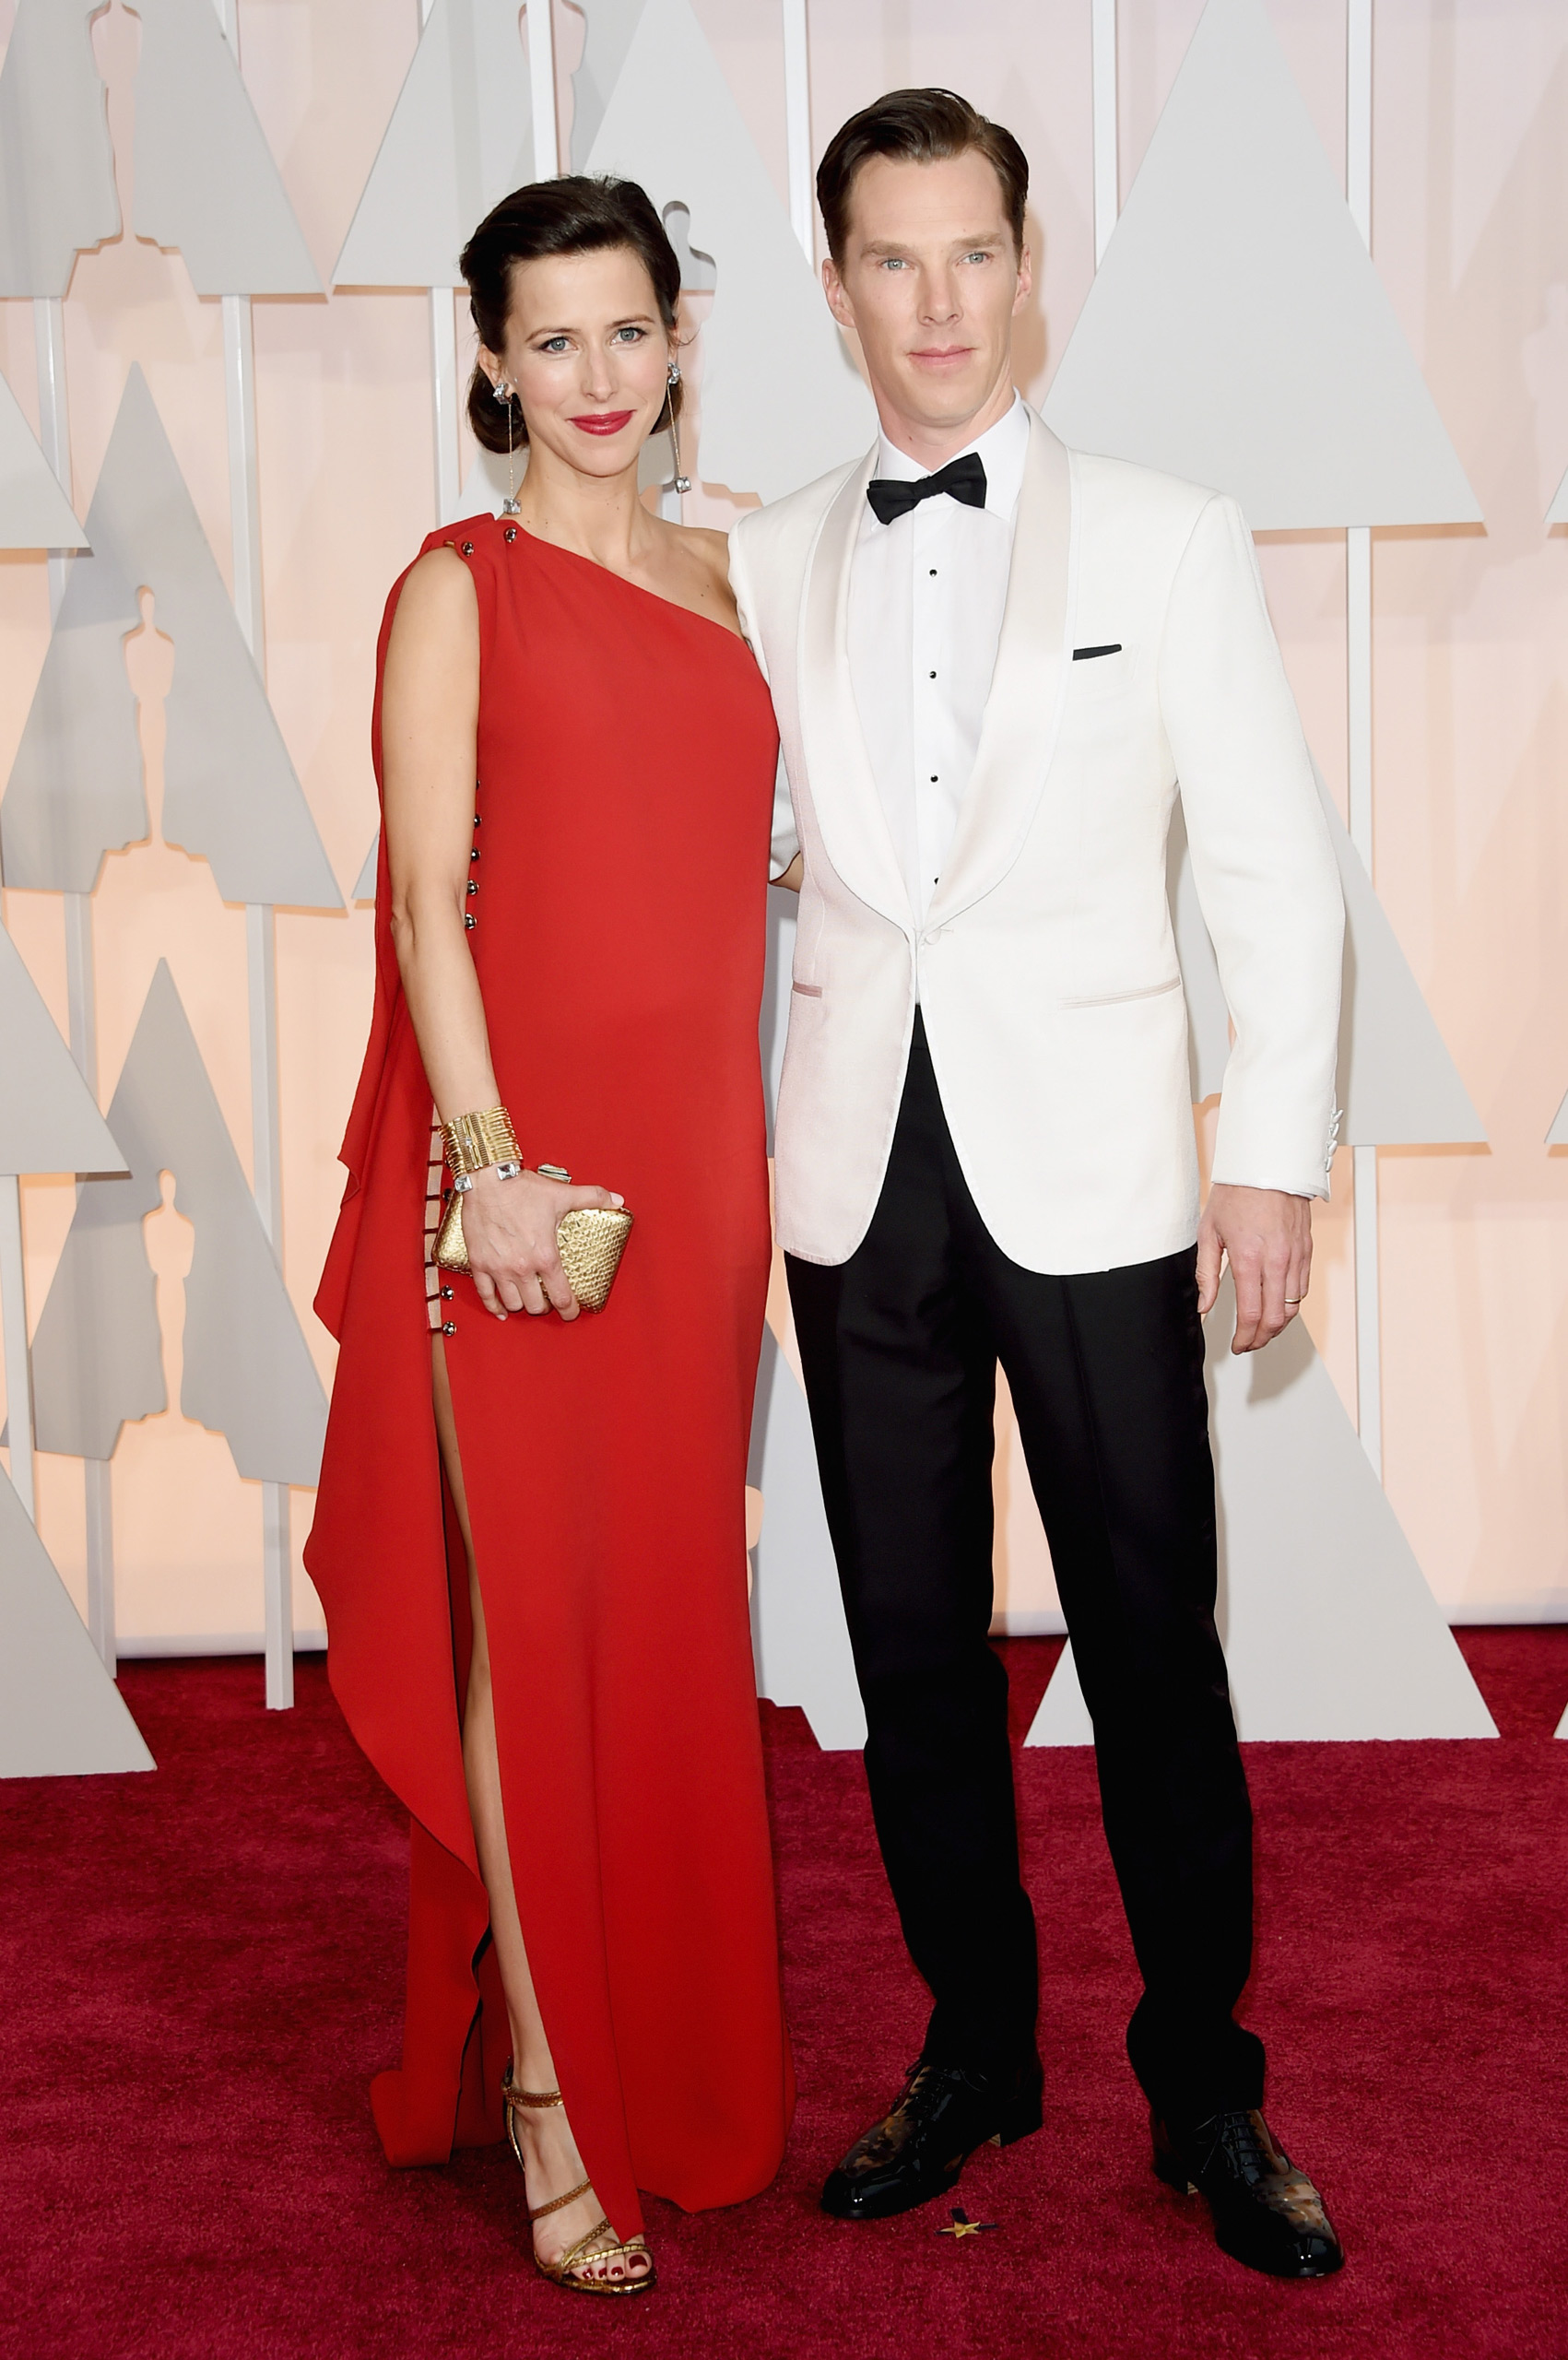 Benedict Cumberbatch and Sophie Hunter attend the 87th Annual Academy Awards on Feb. 22, 2015 in Hollywood, Calif.